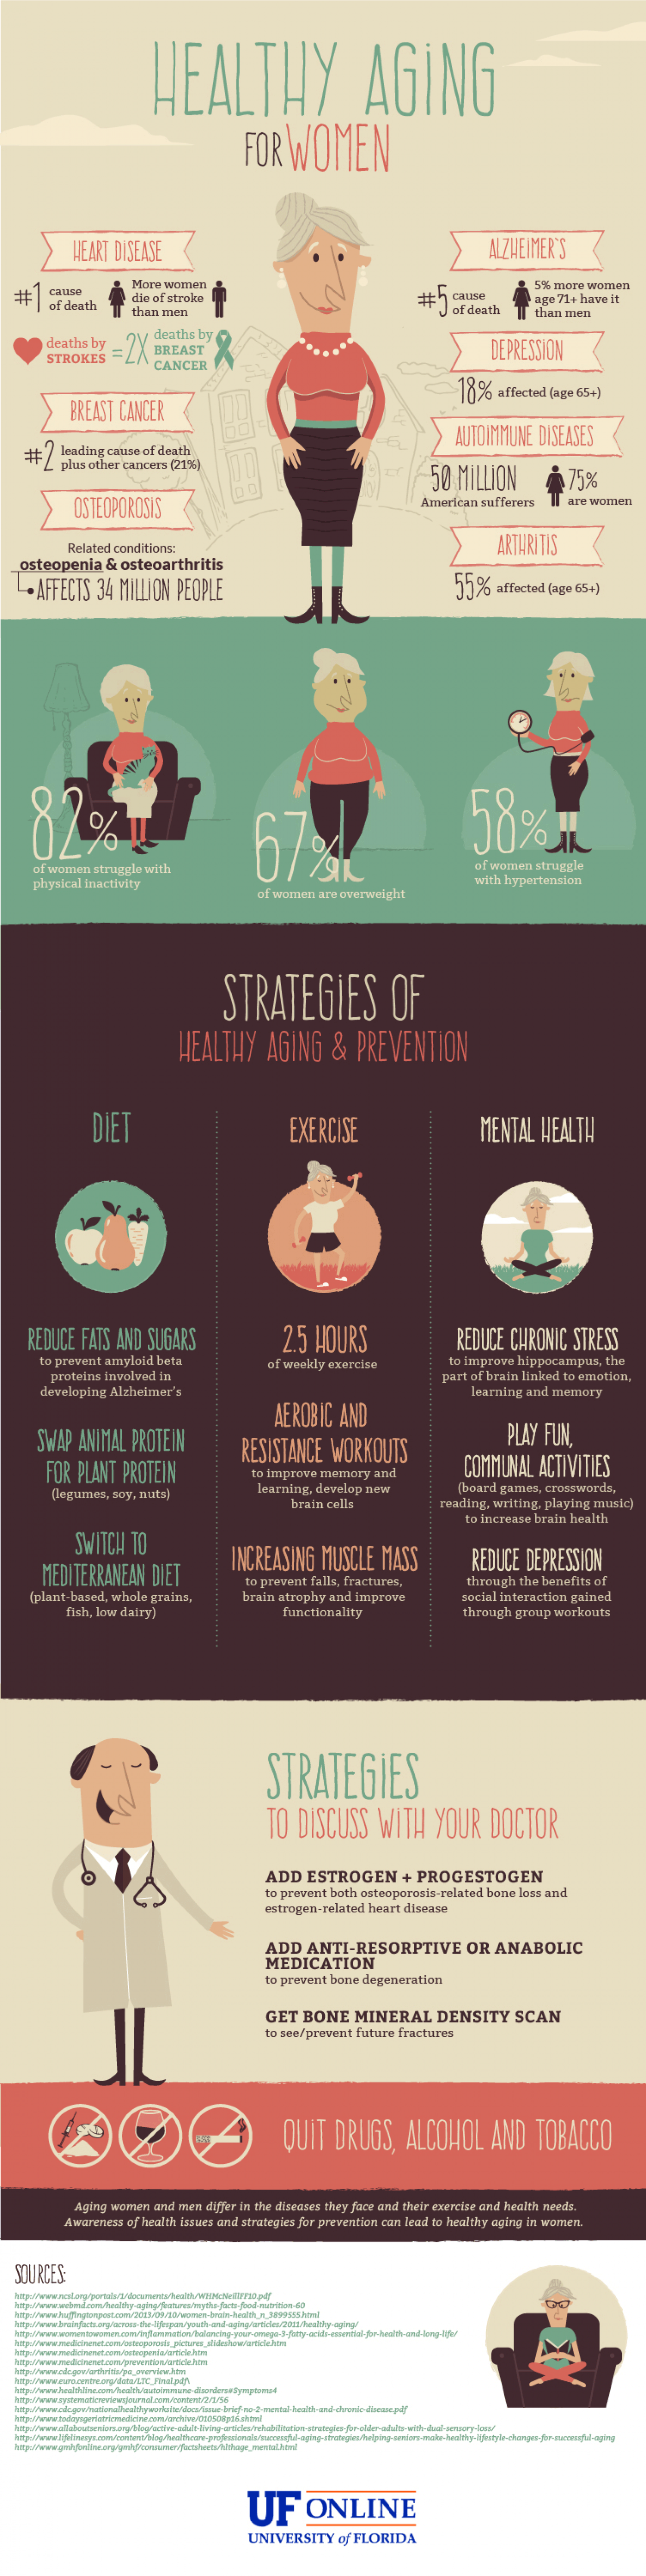 A Guide to Healthy Aging for Women Infographic